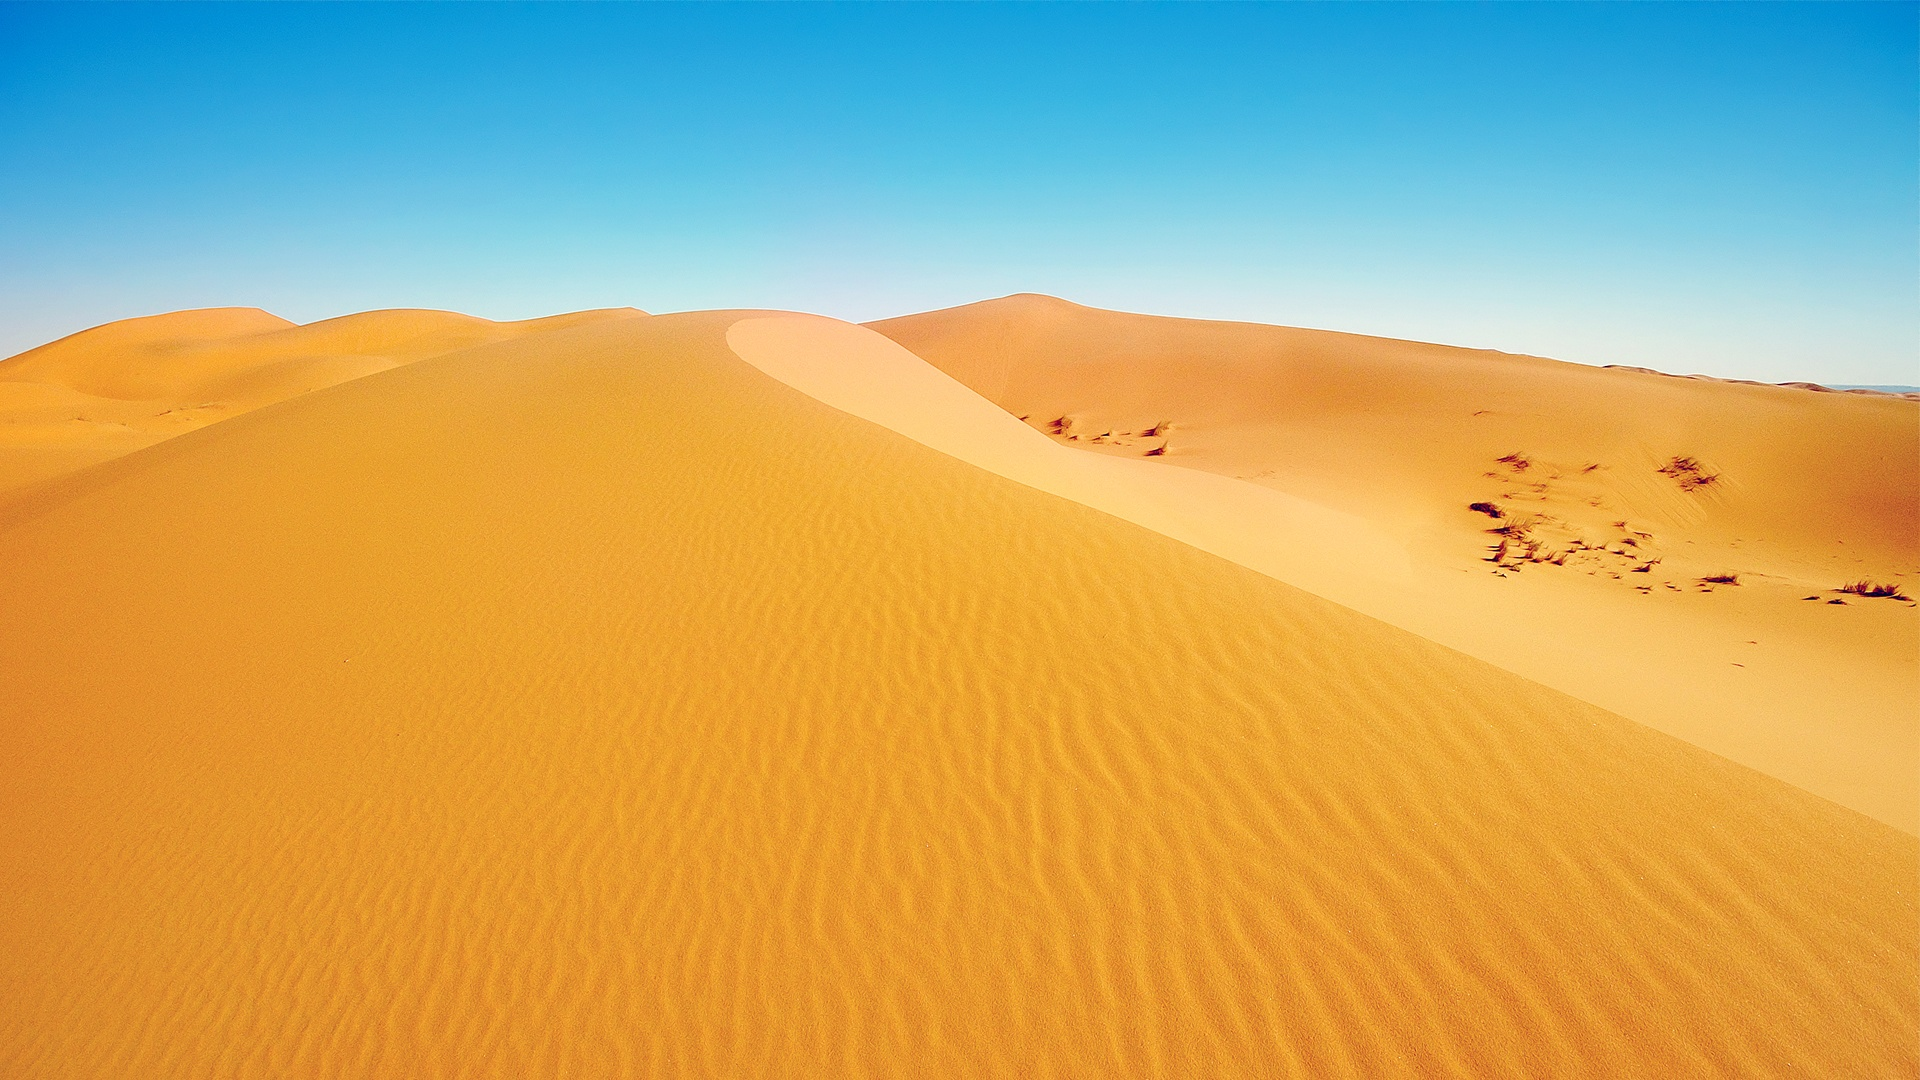 desert wallpapers high quality - photo #12